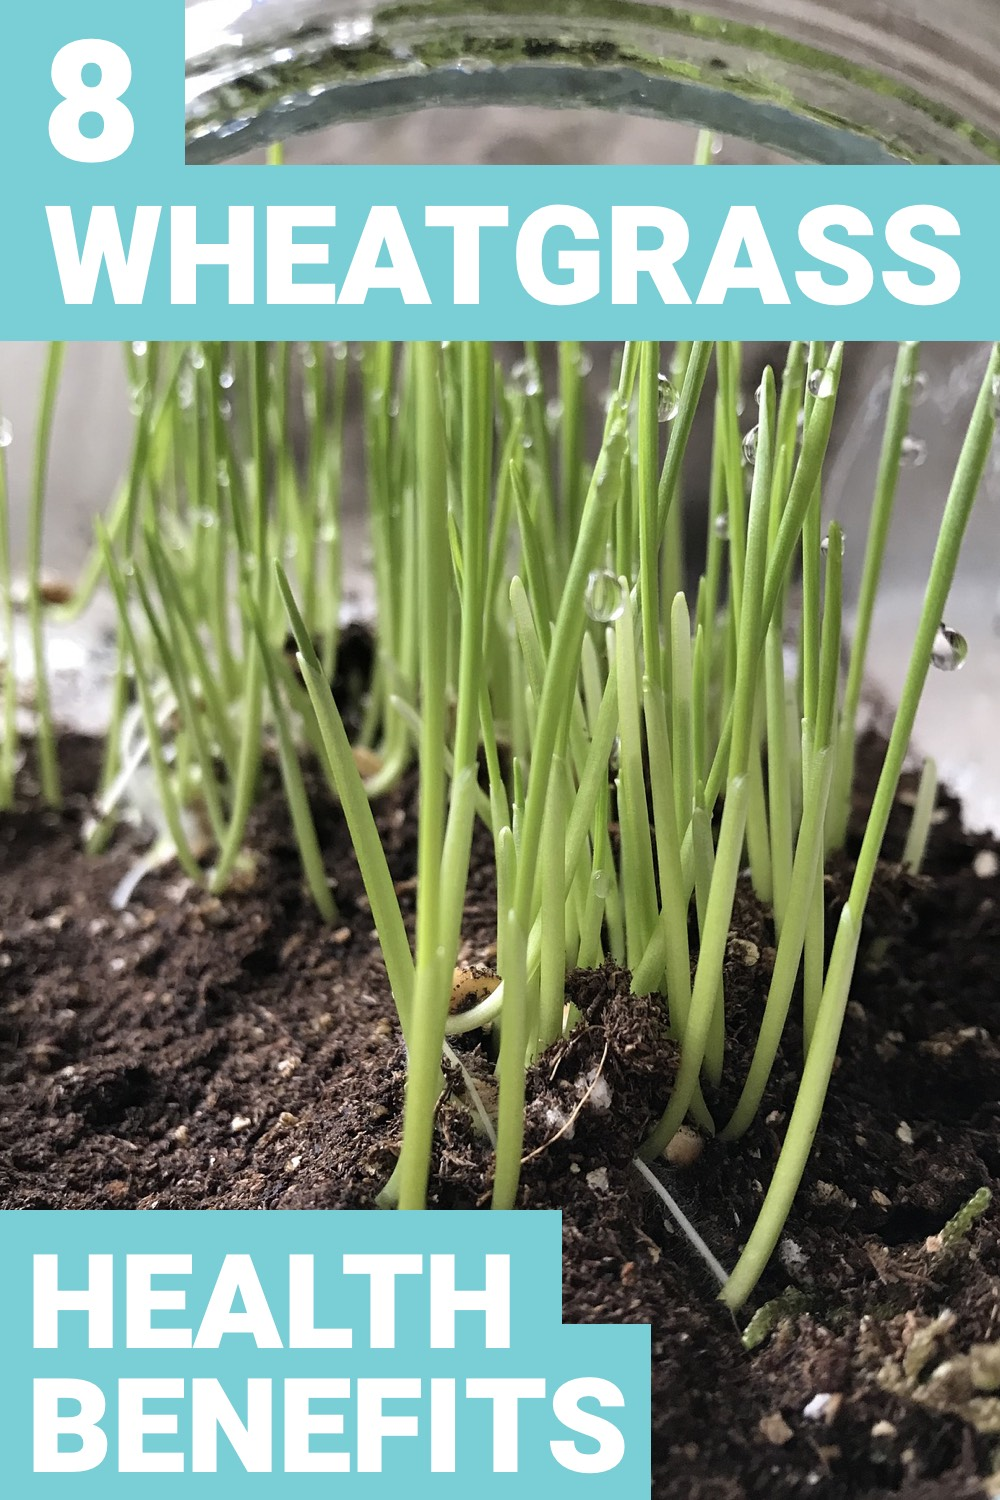 Eating wheatgrass may seem odd, but it's very healthy for you. Here are 8 wheatgrass benefits that'll improve your health.